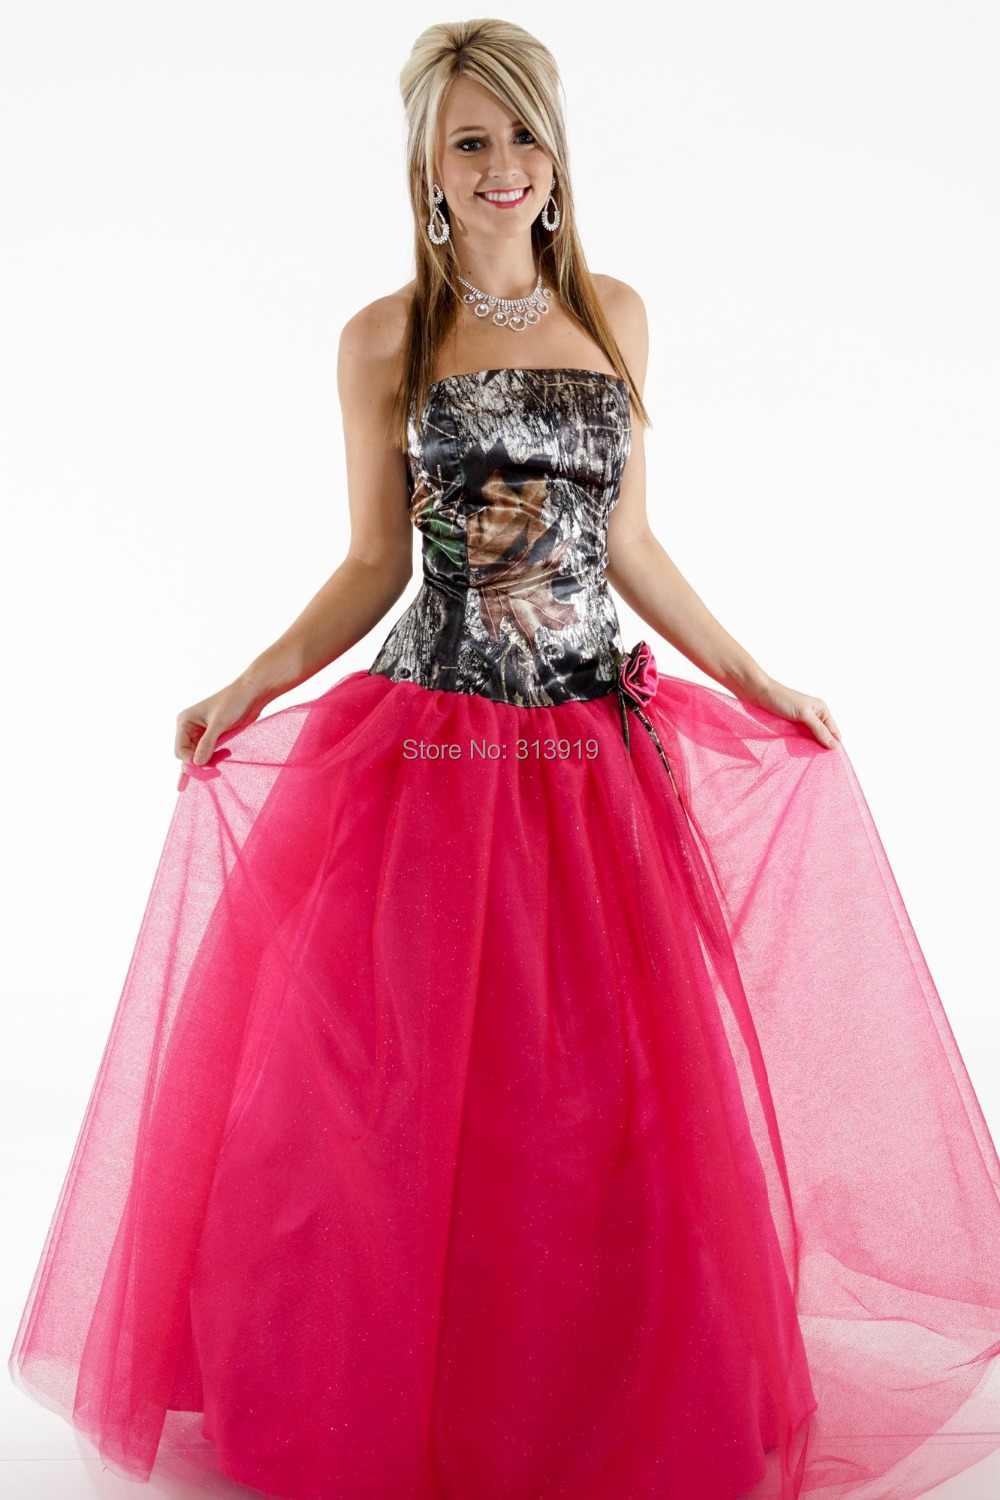 Compare Prices on Camo Prom Dress- Online Shopping/Buy Low Price ...